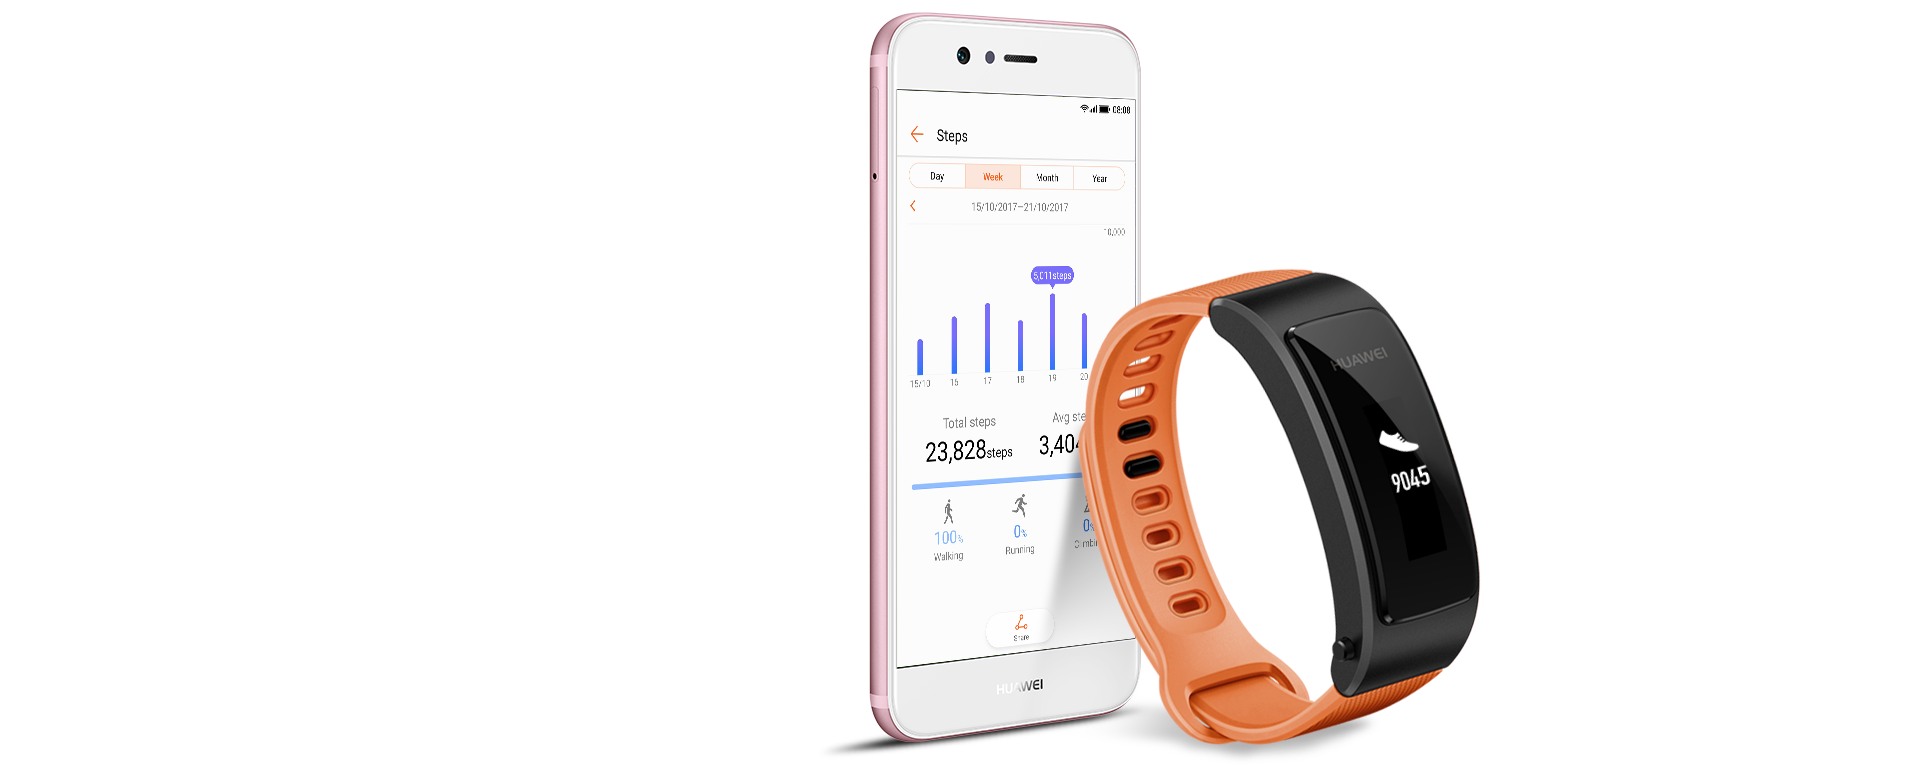 huawei talkband b3 lite data sync